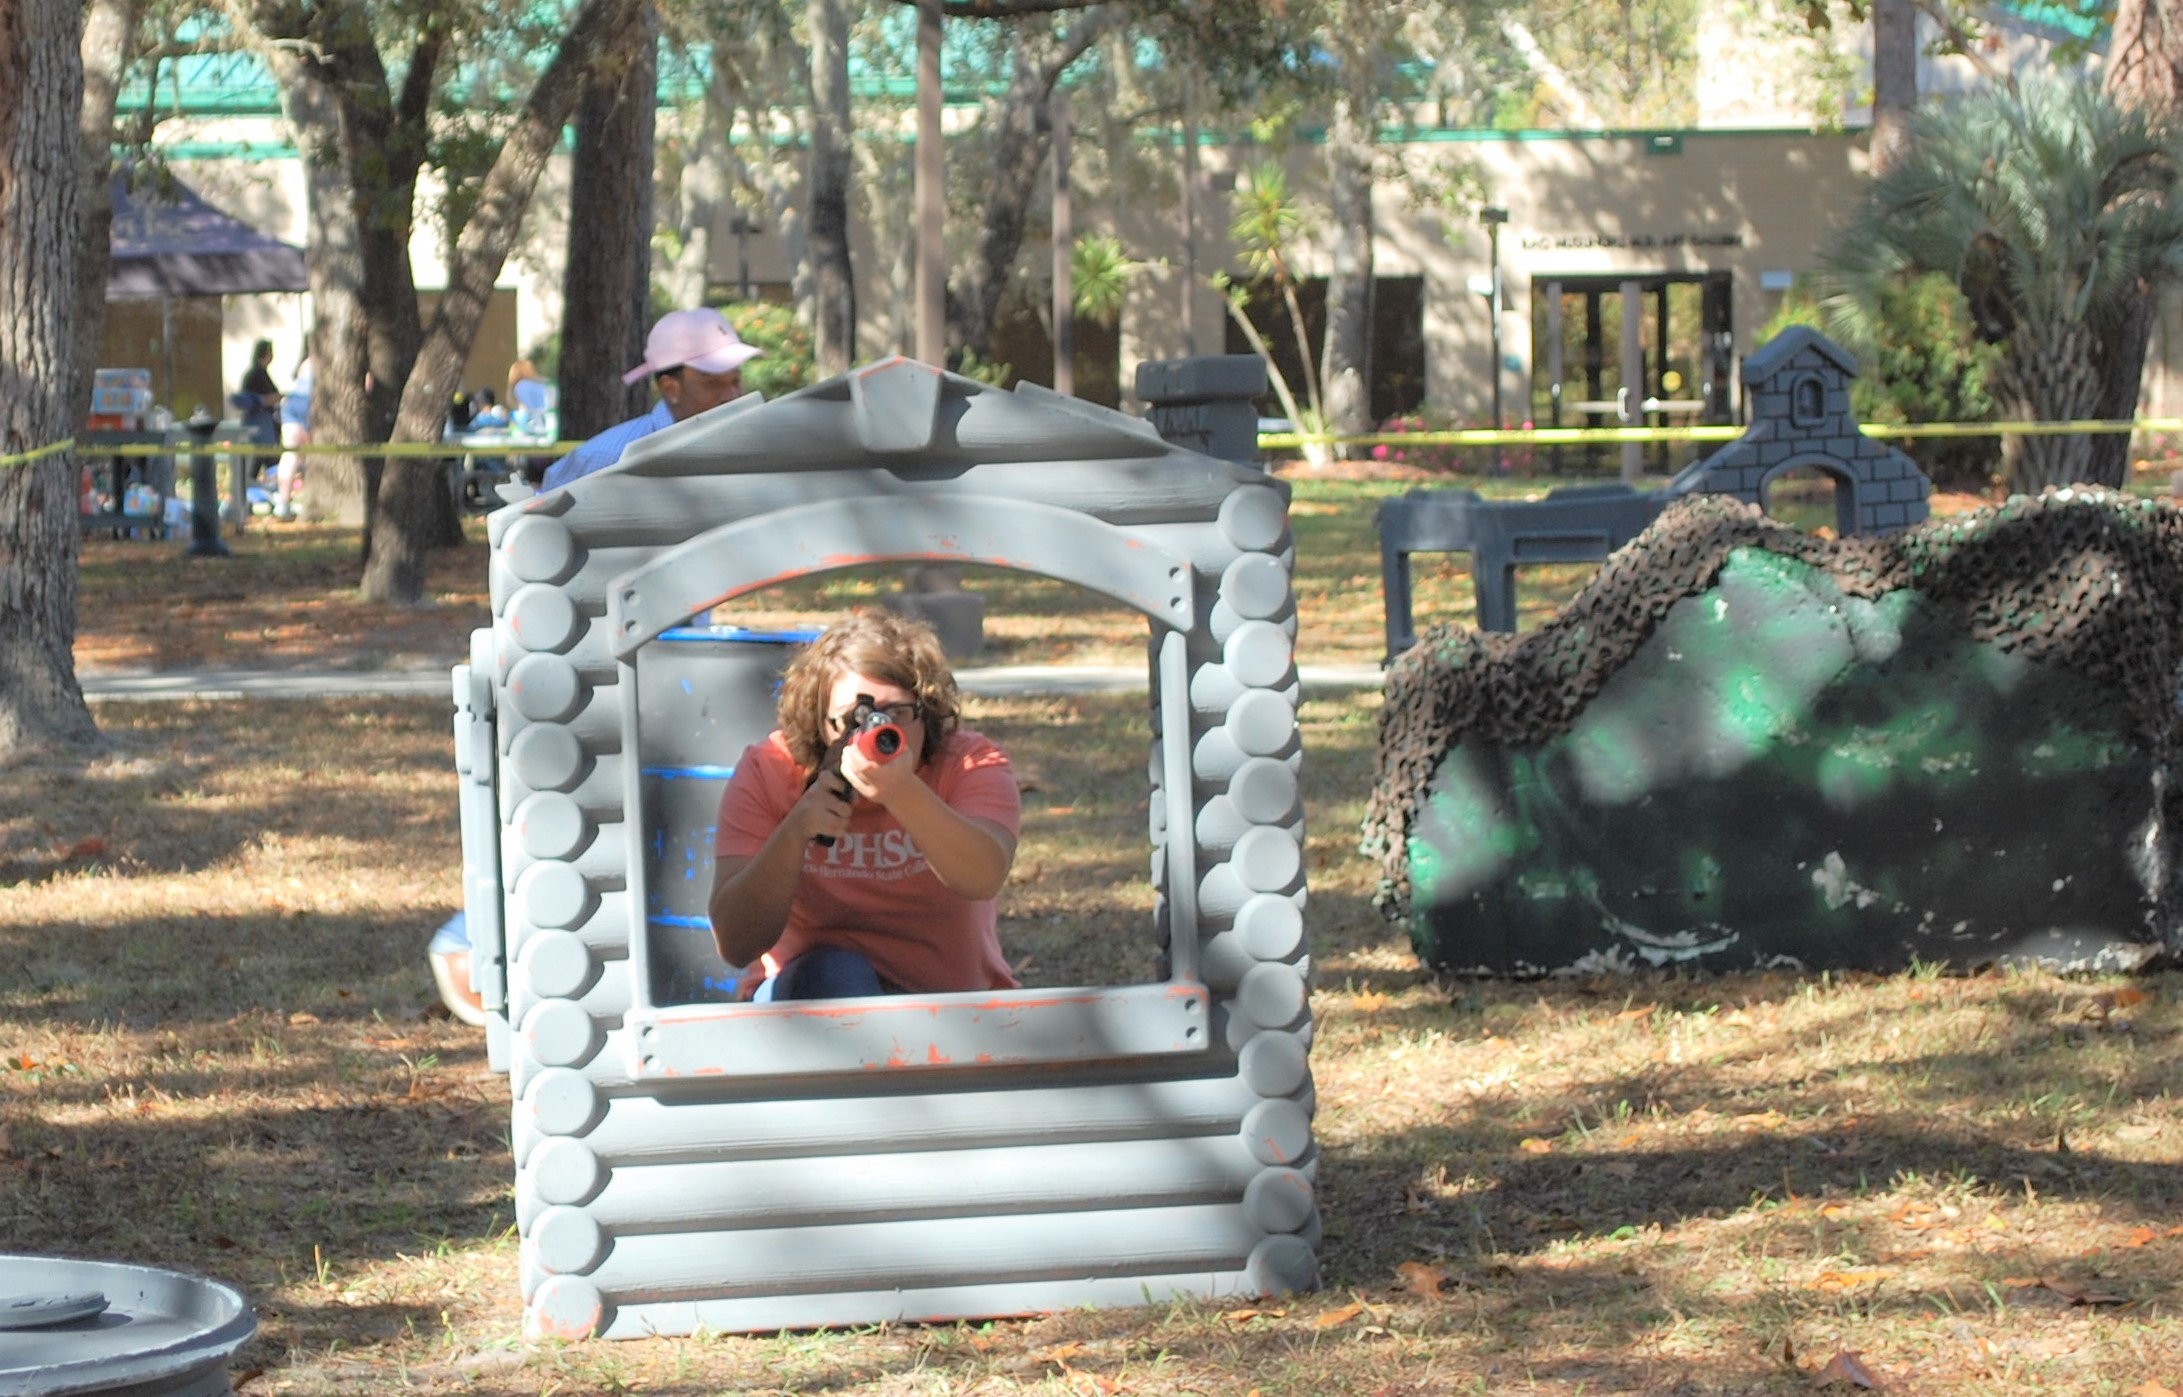 College Events in Florida - Stealth Mobile Laser Tag (48)